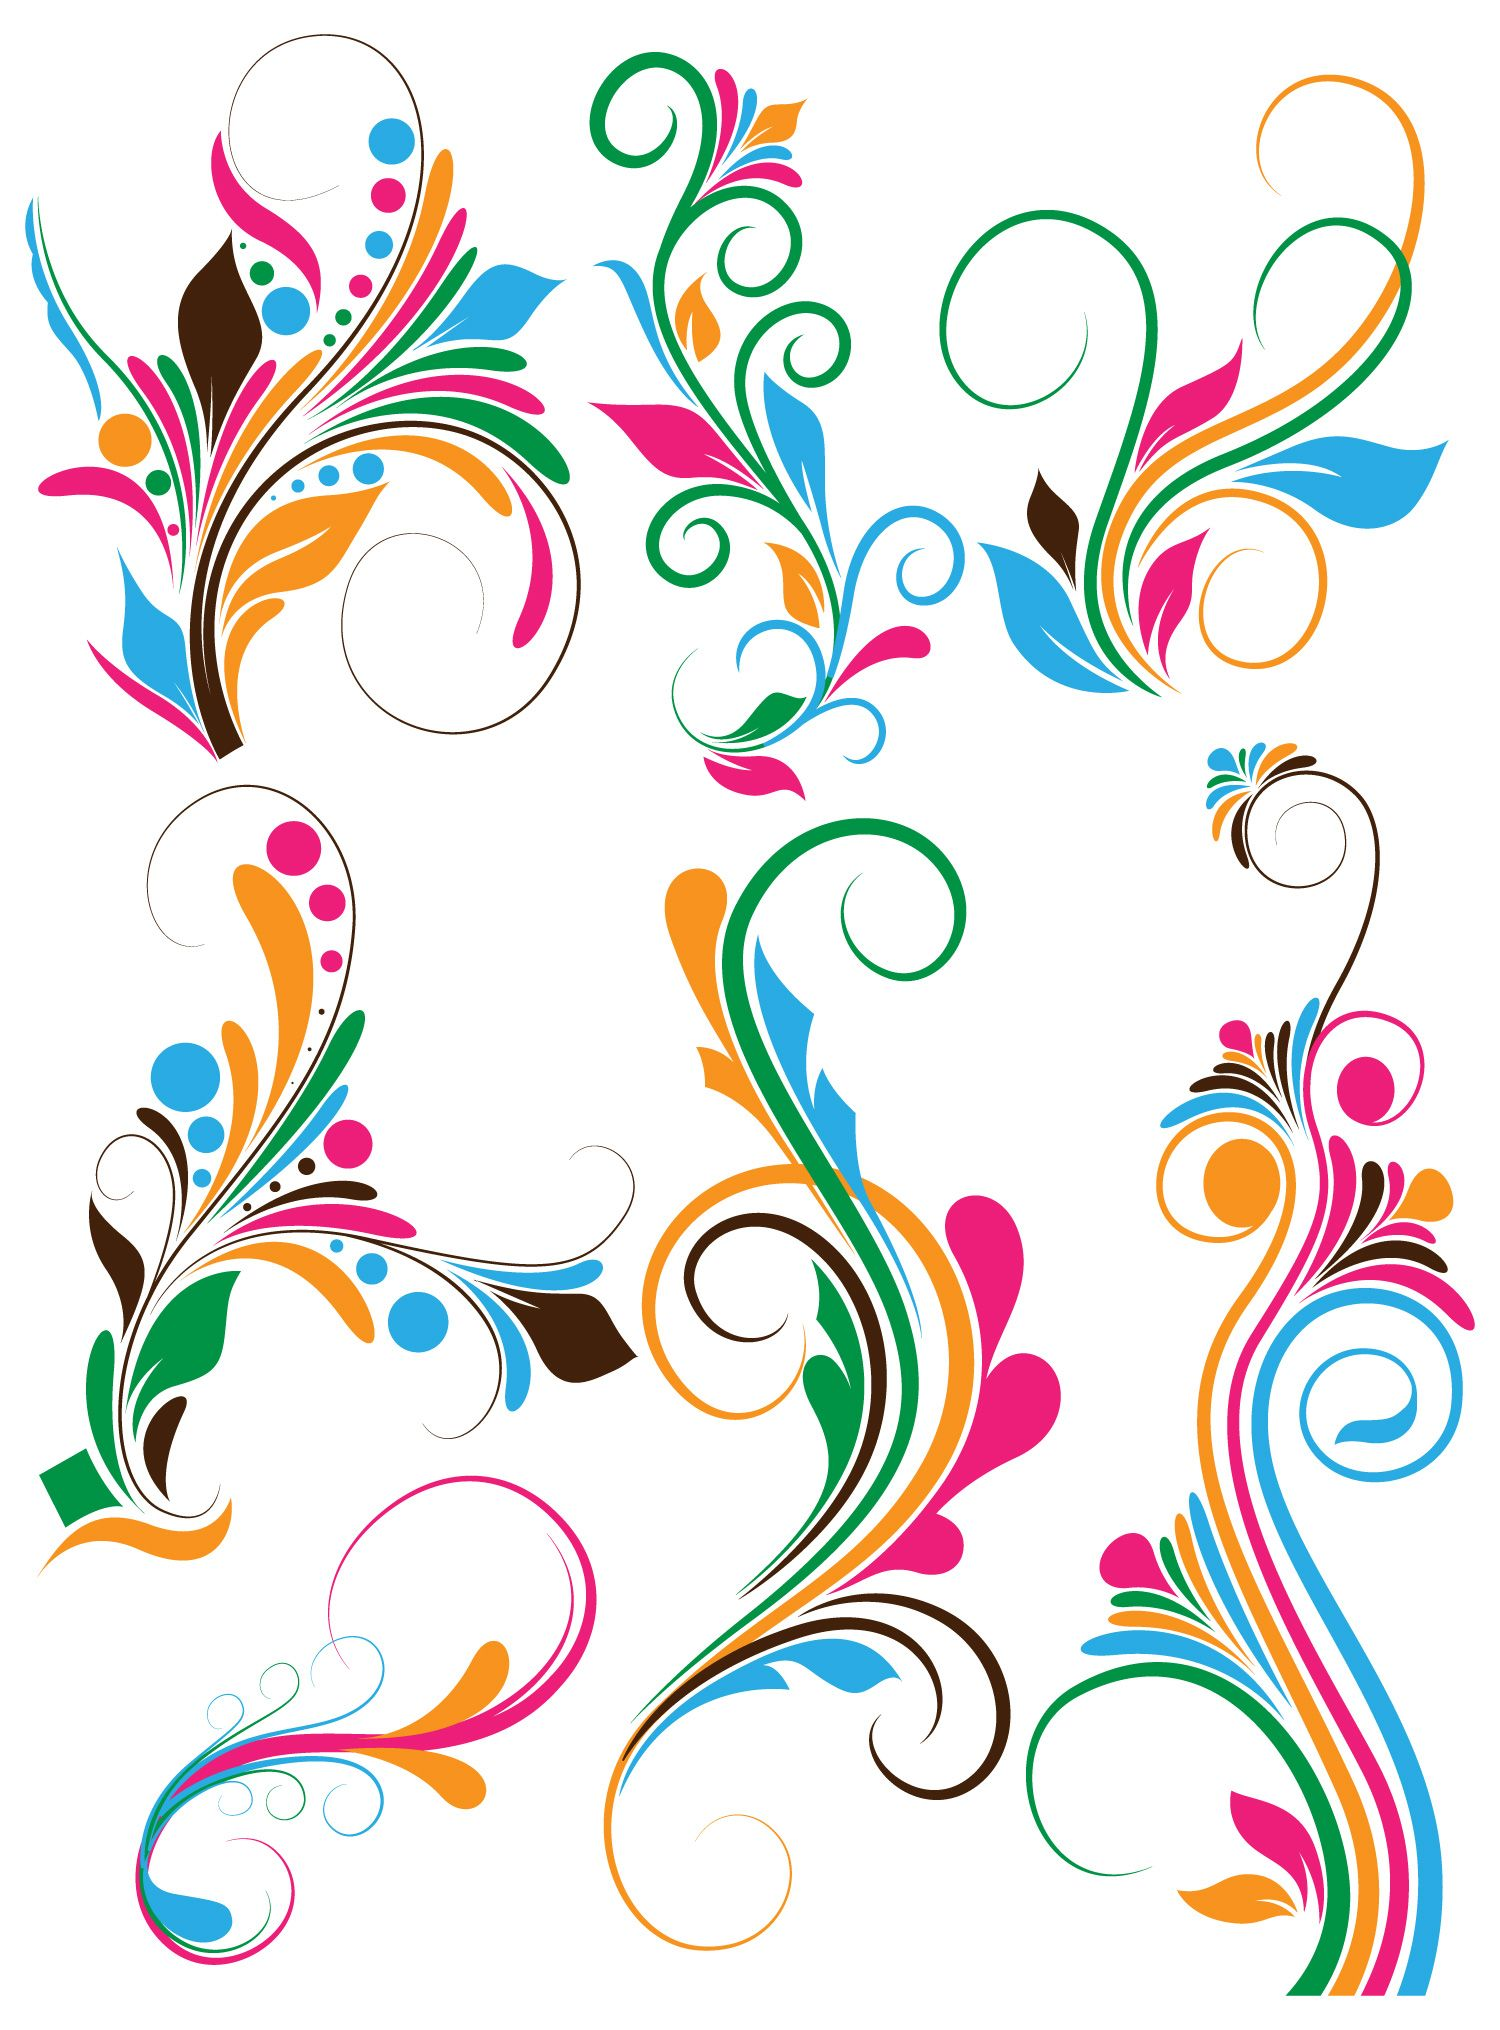 flower swirl clip art free photoshop flourish swirls vectors rh pinterest com swirl vector art free download spiral vector art